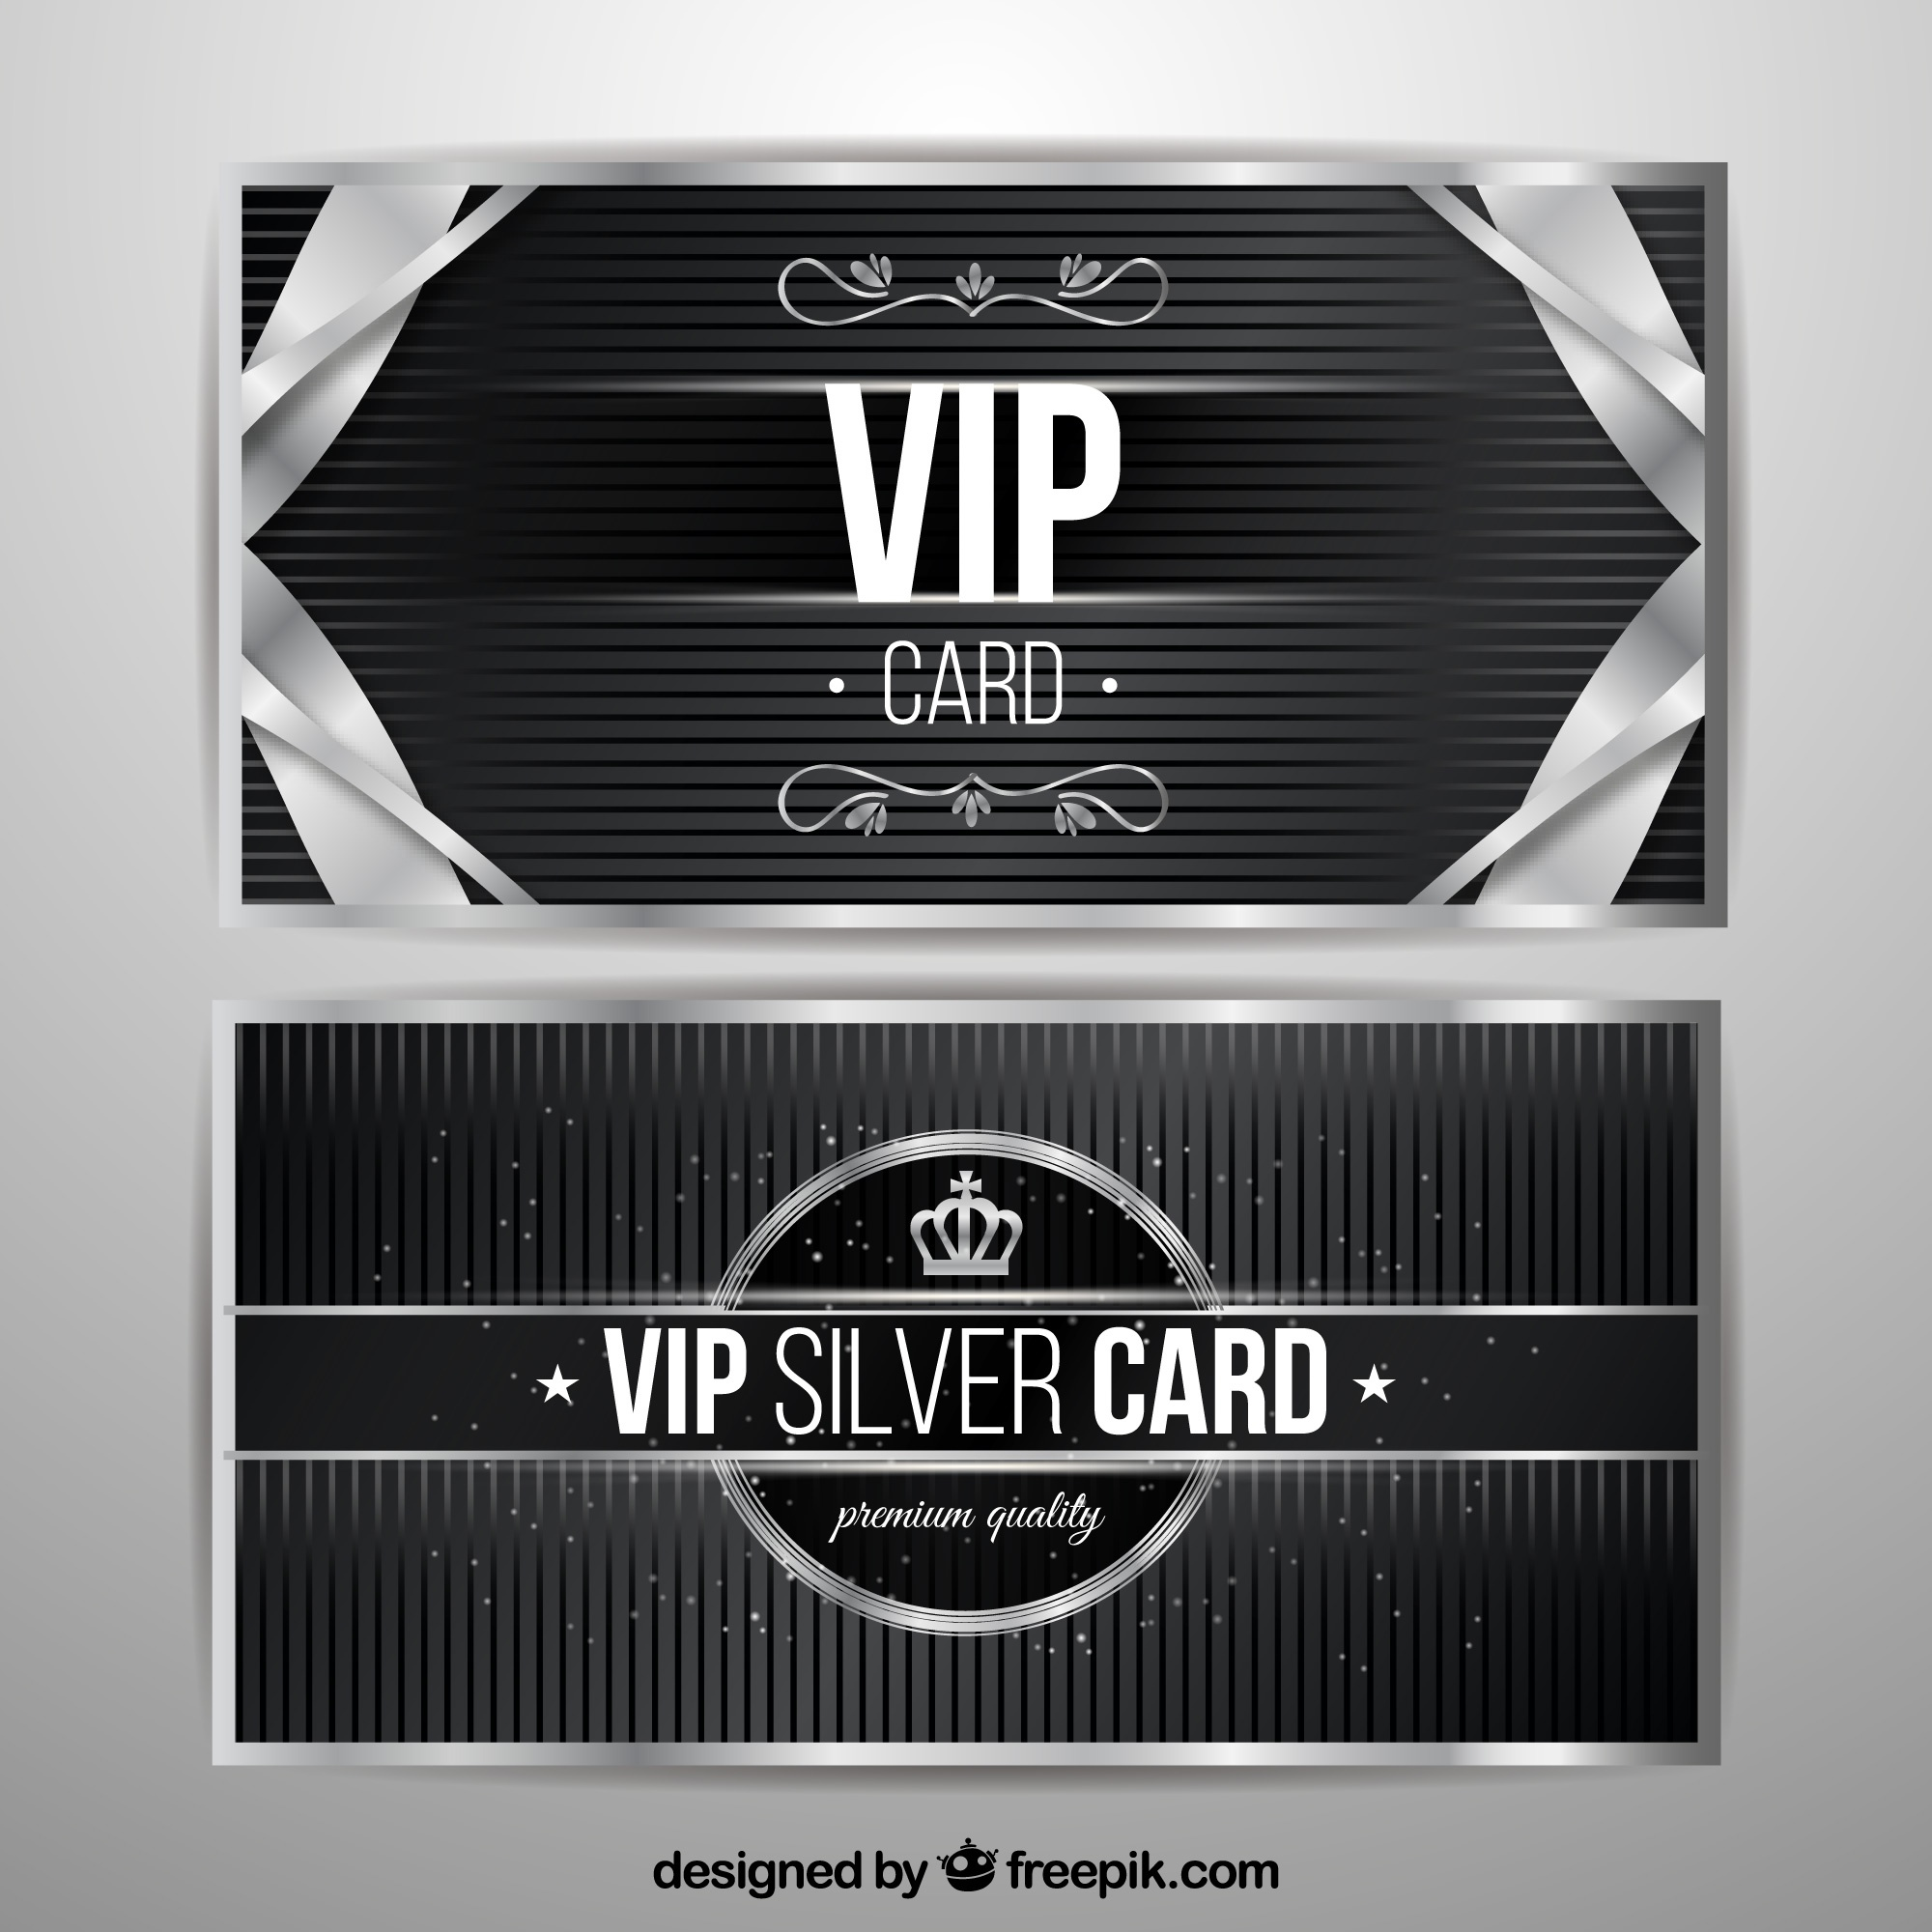 Vip silver cards with vintage elements